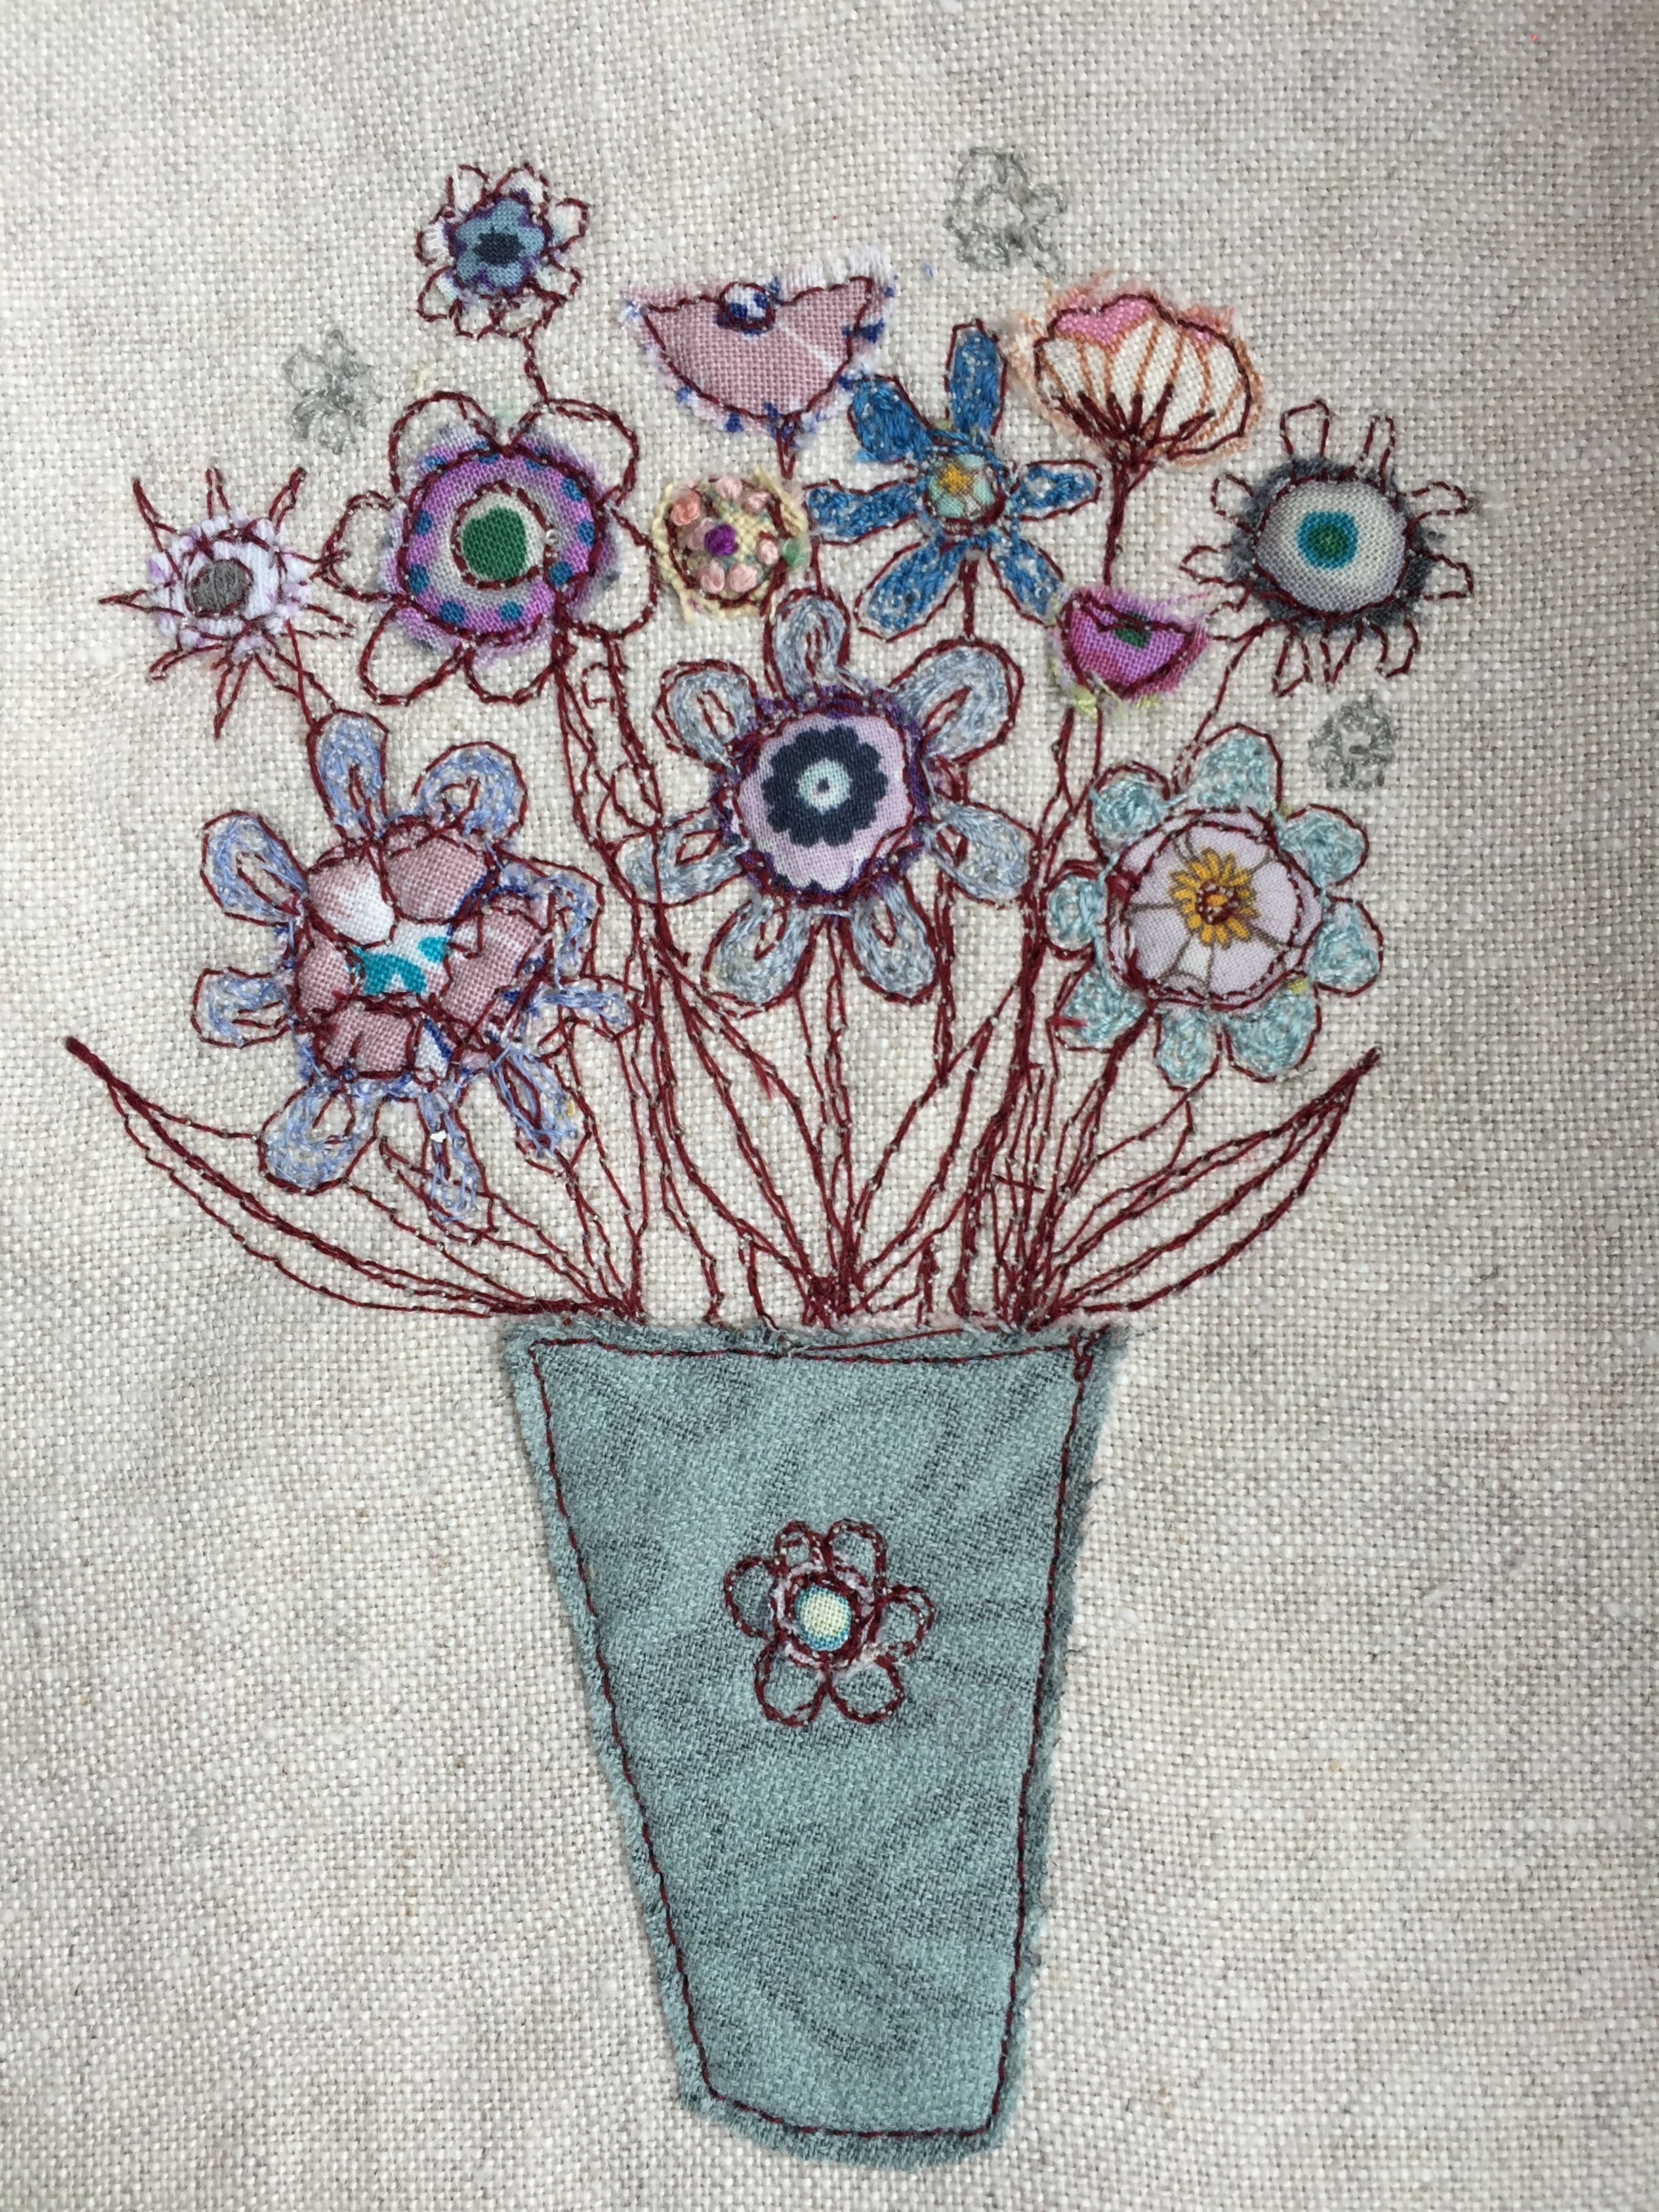 Freemachine embroidery & appliqué vase of flowers (With